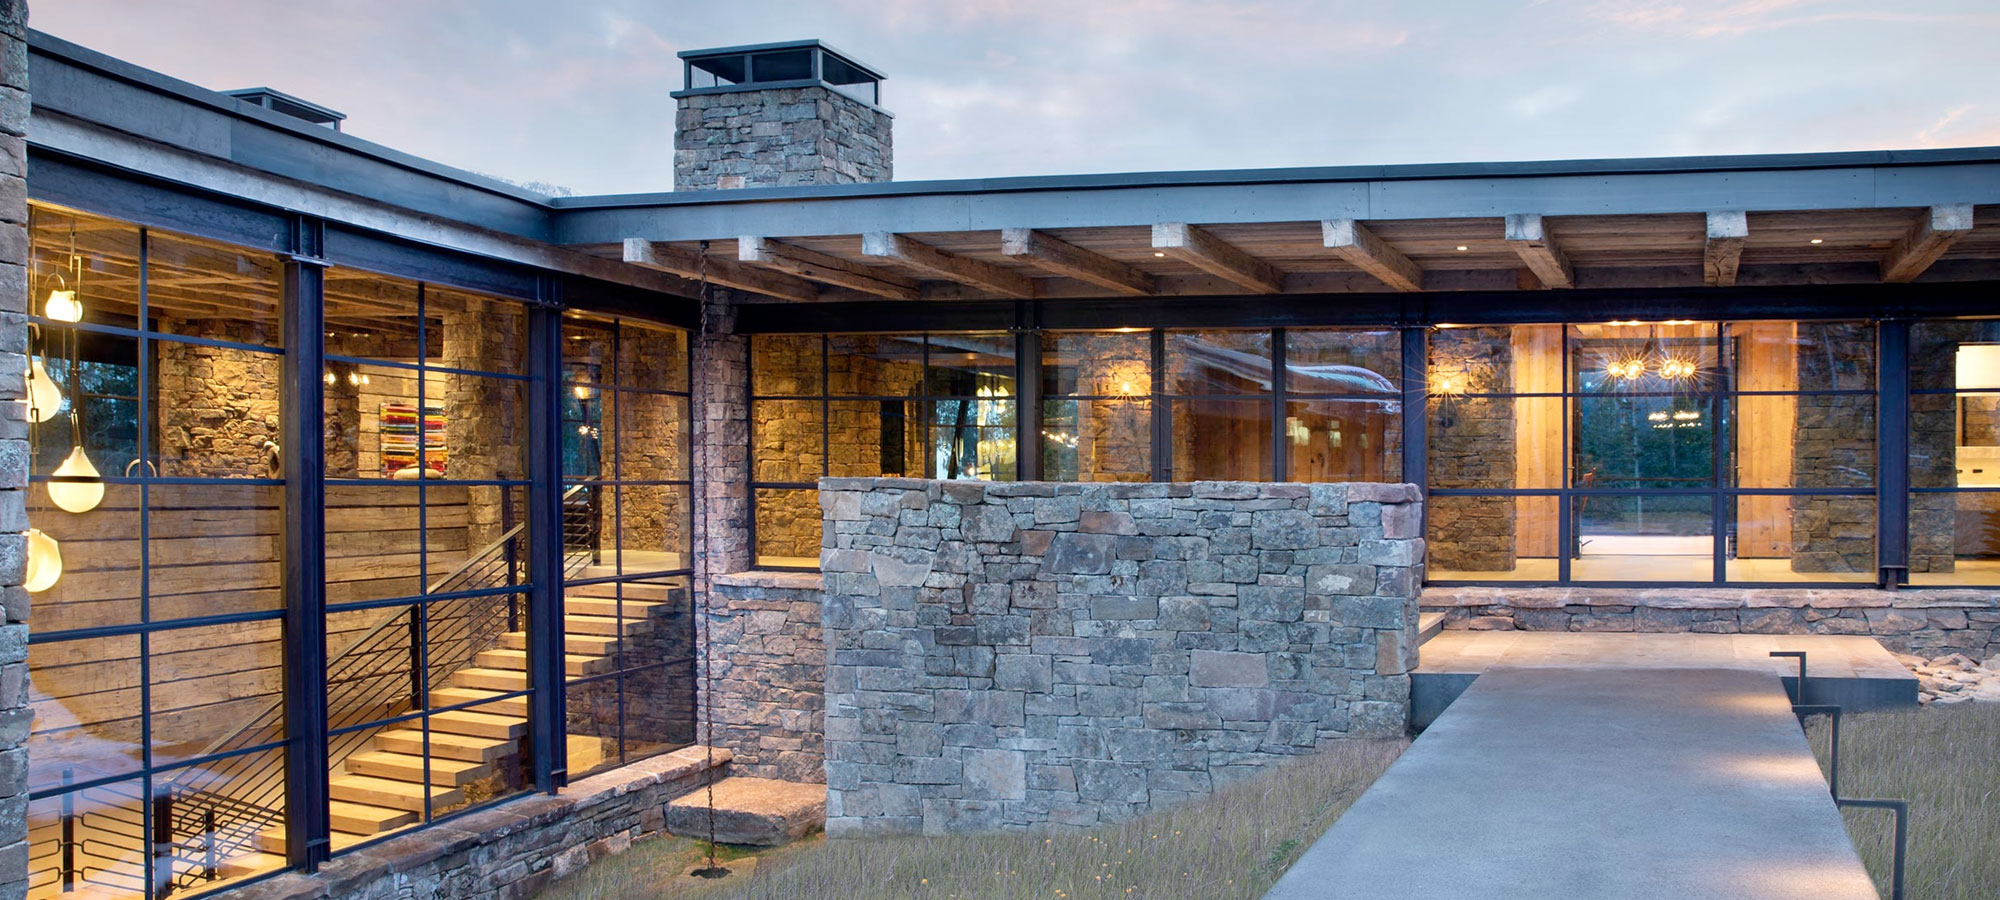 Wit's End Montana by Pearson Design Group